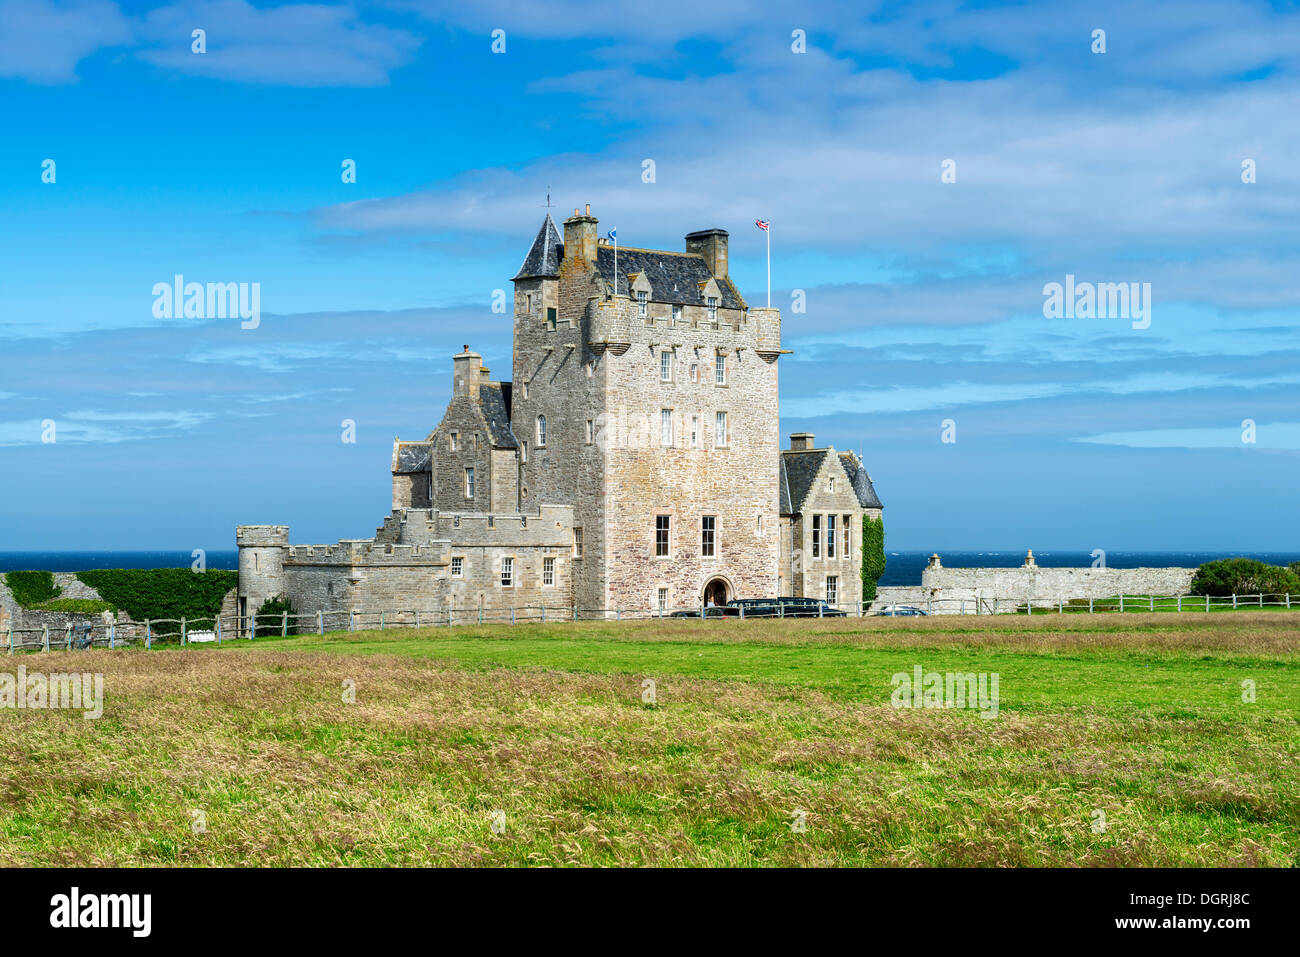 Ackergill Tower near Wick, a castle from the 15th century, on the North Sea coast, Caithness County, Scotland, United Kingdom - Stock Image